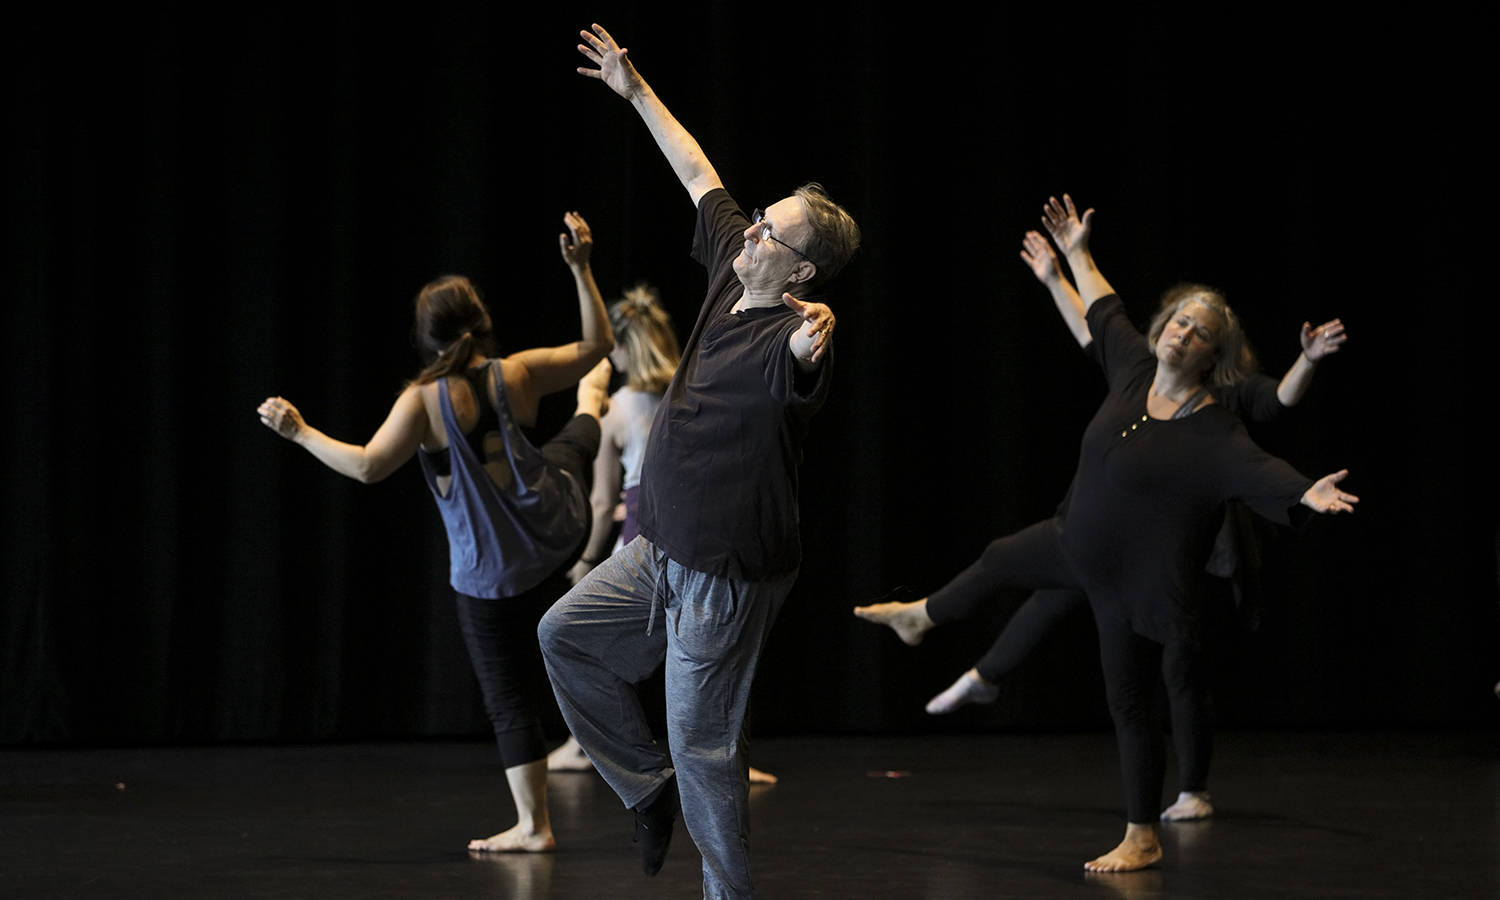 "Professor emeritus of the University of New Mexico and professor emeritus from the College at Brockport, SUNY Bill Evans performs with dance faculty from colleges across the world during the Somatic Dance Conference, ""Making Your Corner of the World a Better Place: Somatics, Science, Pedagogy and Performance"" in Deming Theatre. The conference, organized by Professor of Dance Cynthia Williams and Evans, brought more than 75 keynote presenters and performers to the Gearan Center for the Performing Arts."